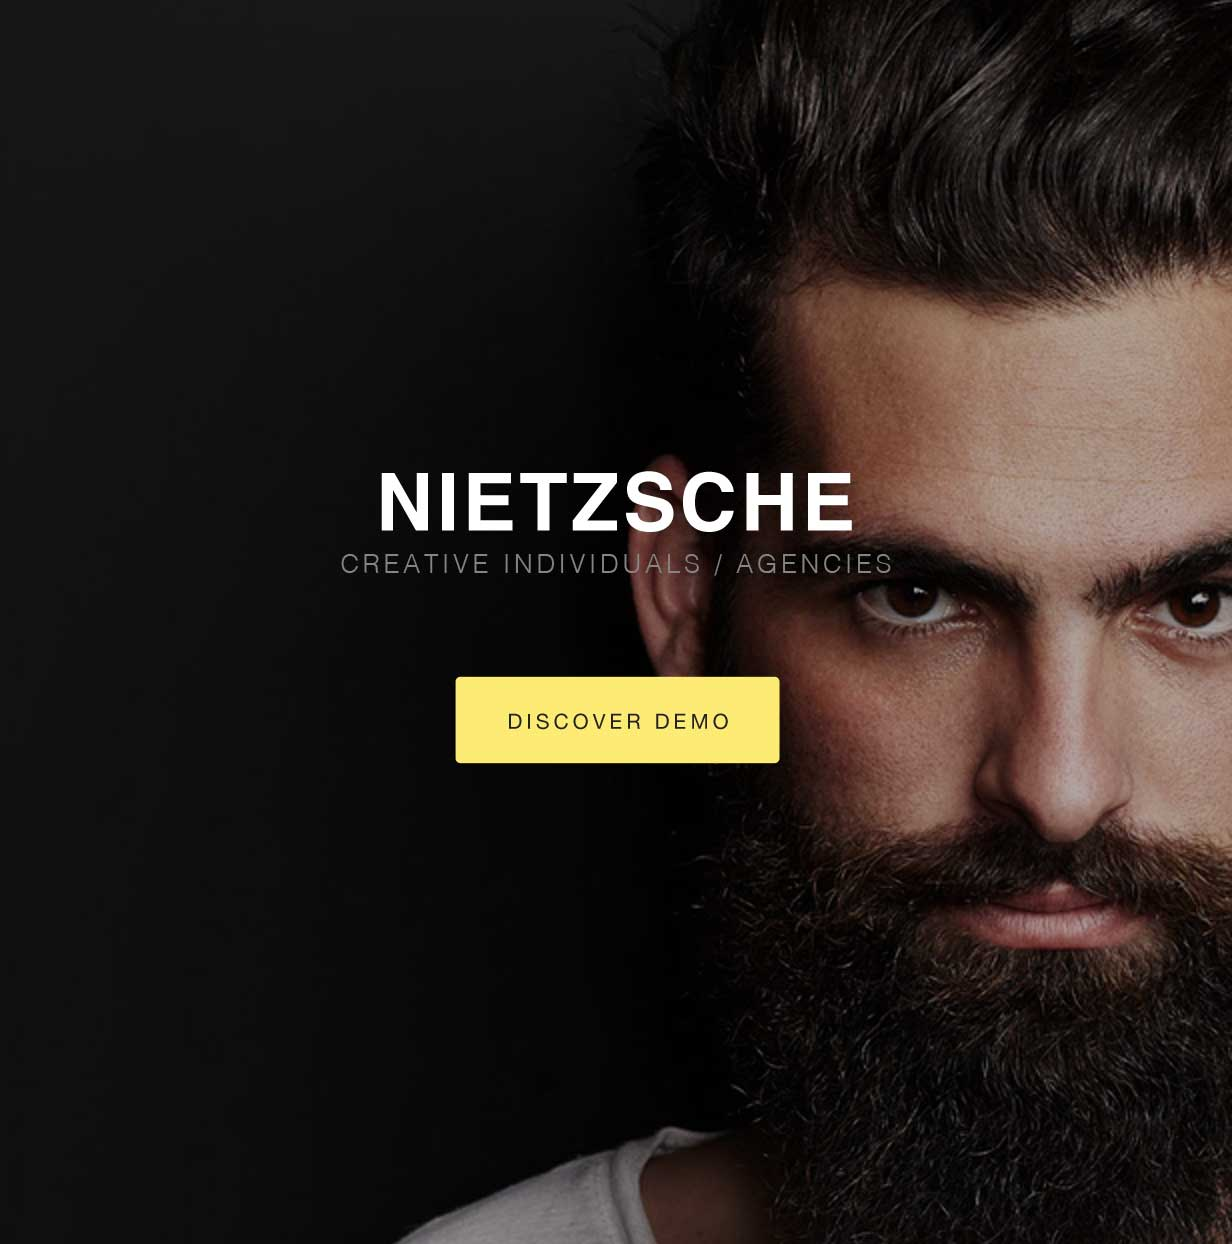 Nietzsche - Creative Multi-Purpose HTML Template - 1